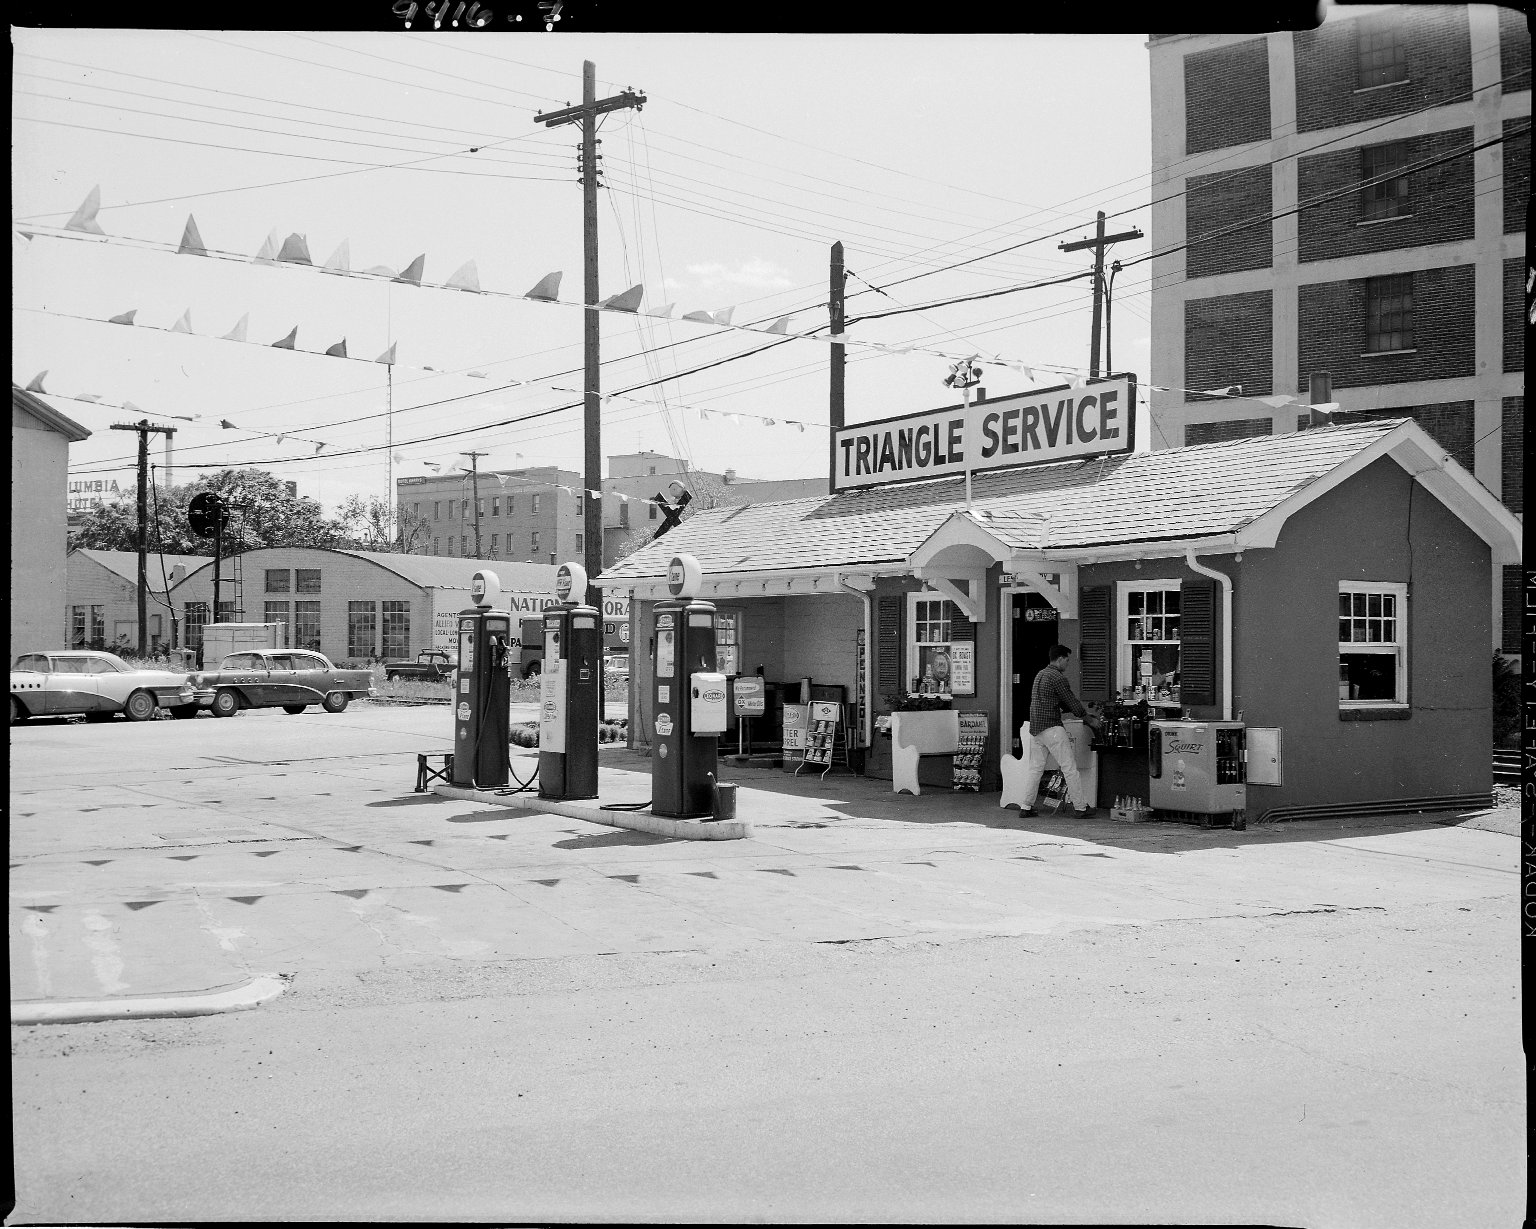 Triangle Service Station, exterior